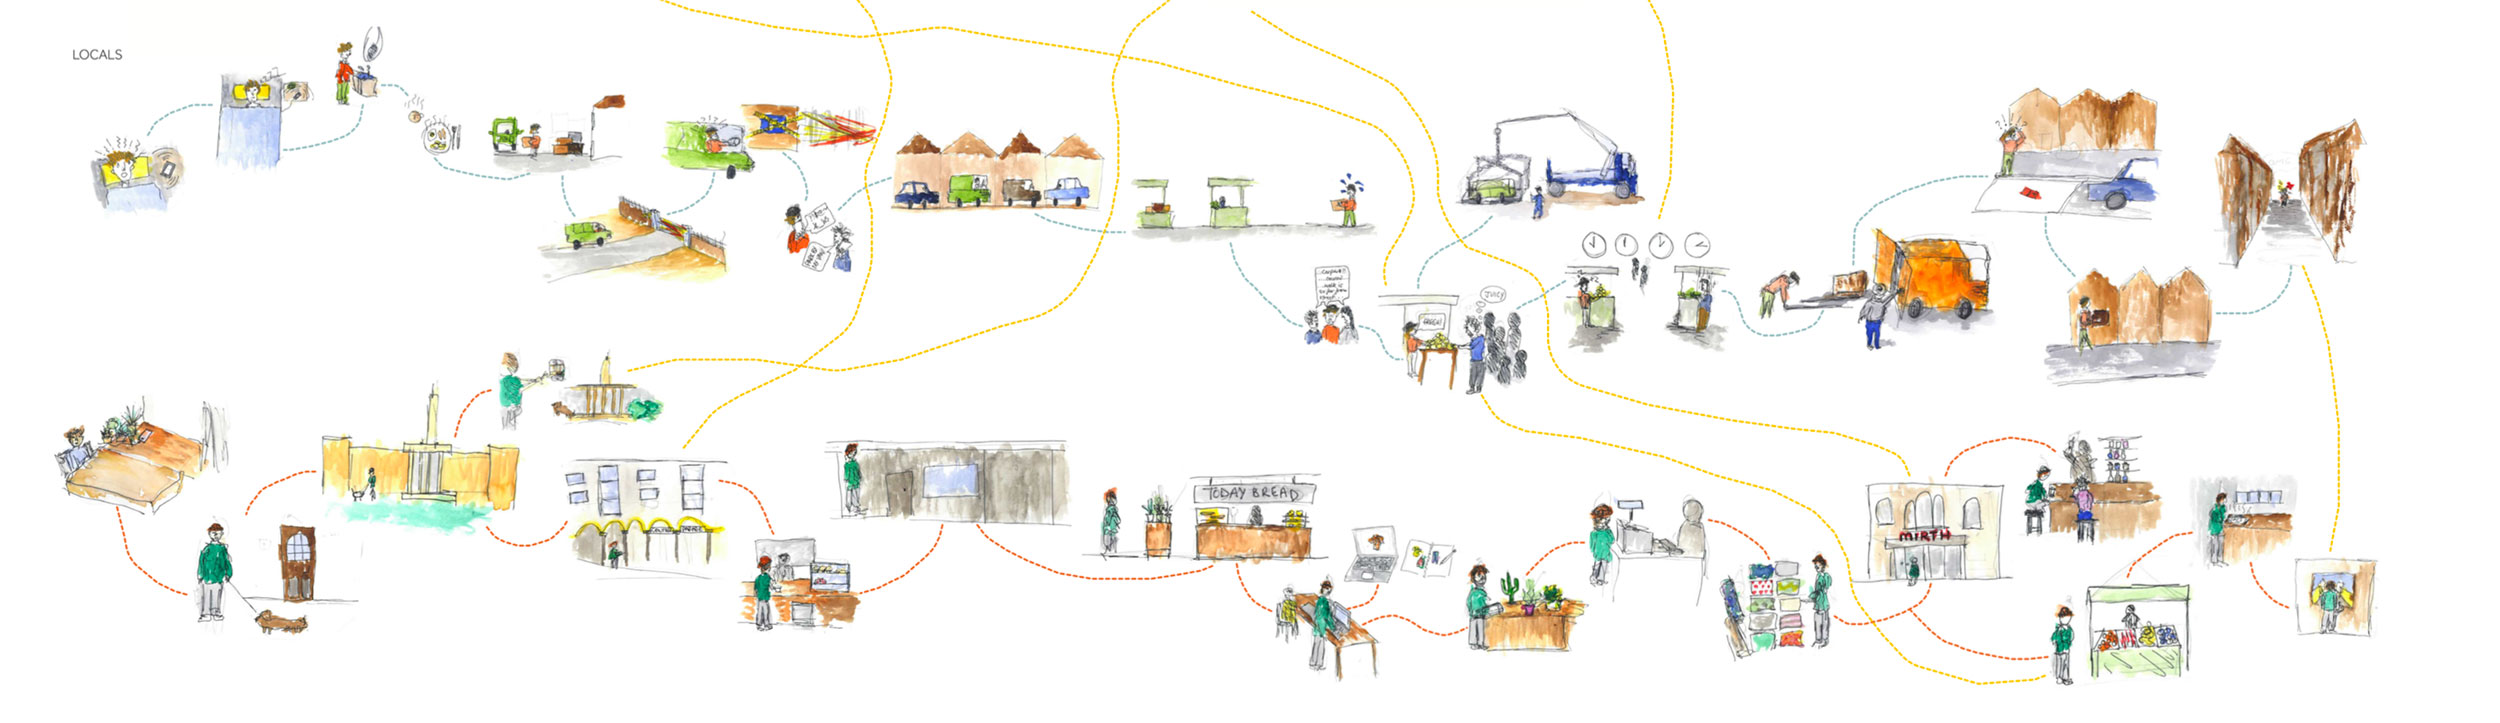 Schematic map of Walthamstow showing the comparative journeys taken by tourists and residents and the points where the two overlap.